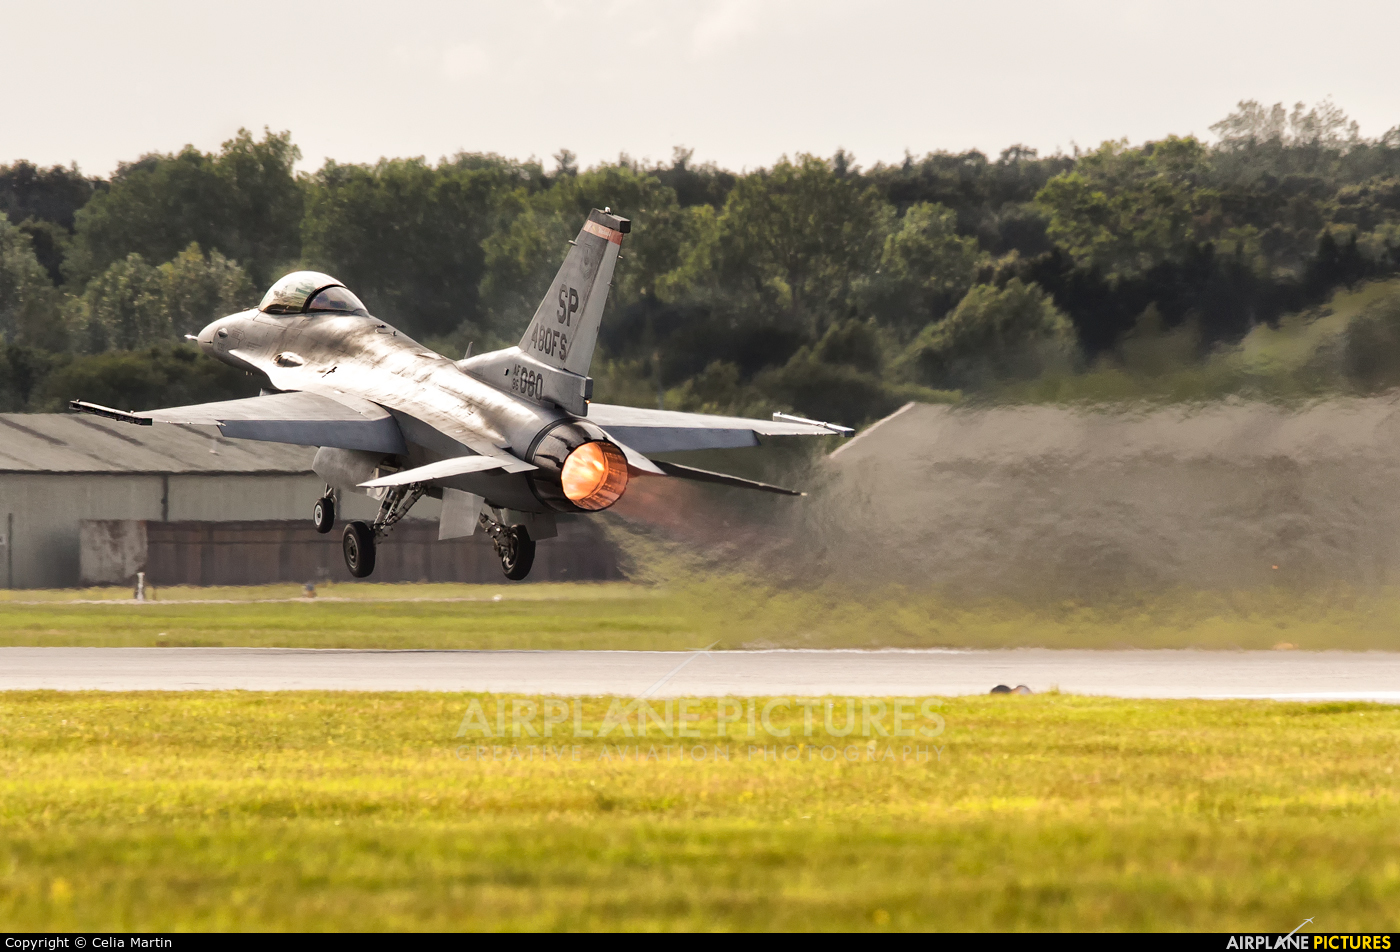 USA - Air Force 96-0080 aircraft at Fairford